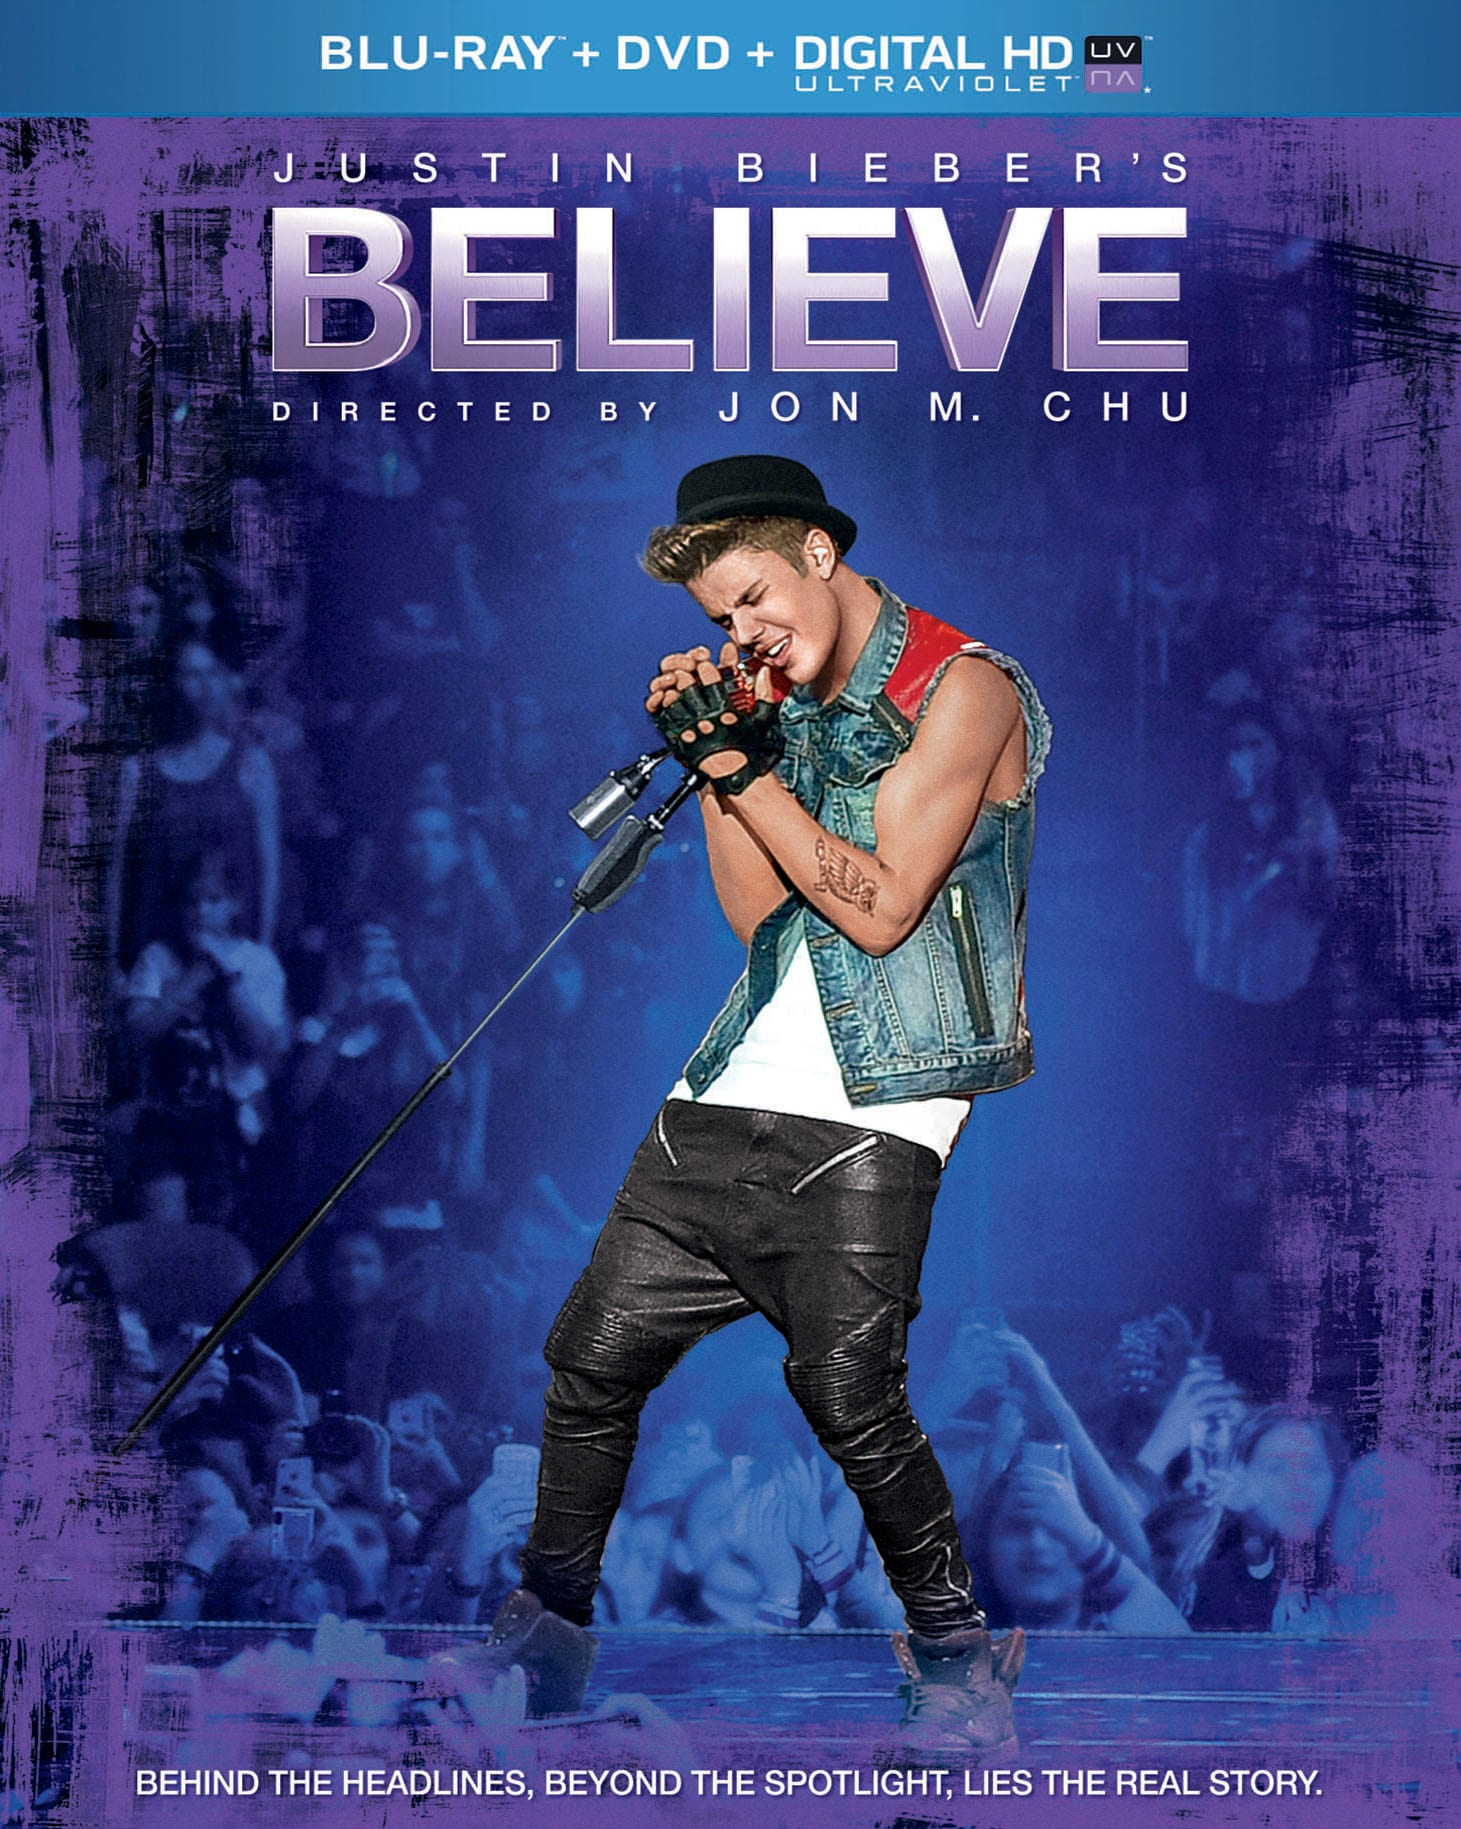 Justin Bieber's Believe (DVD + Digital + Ultraviolet) [Blu-ray]